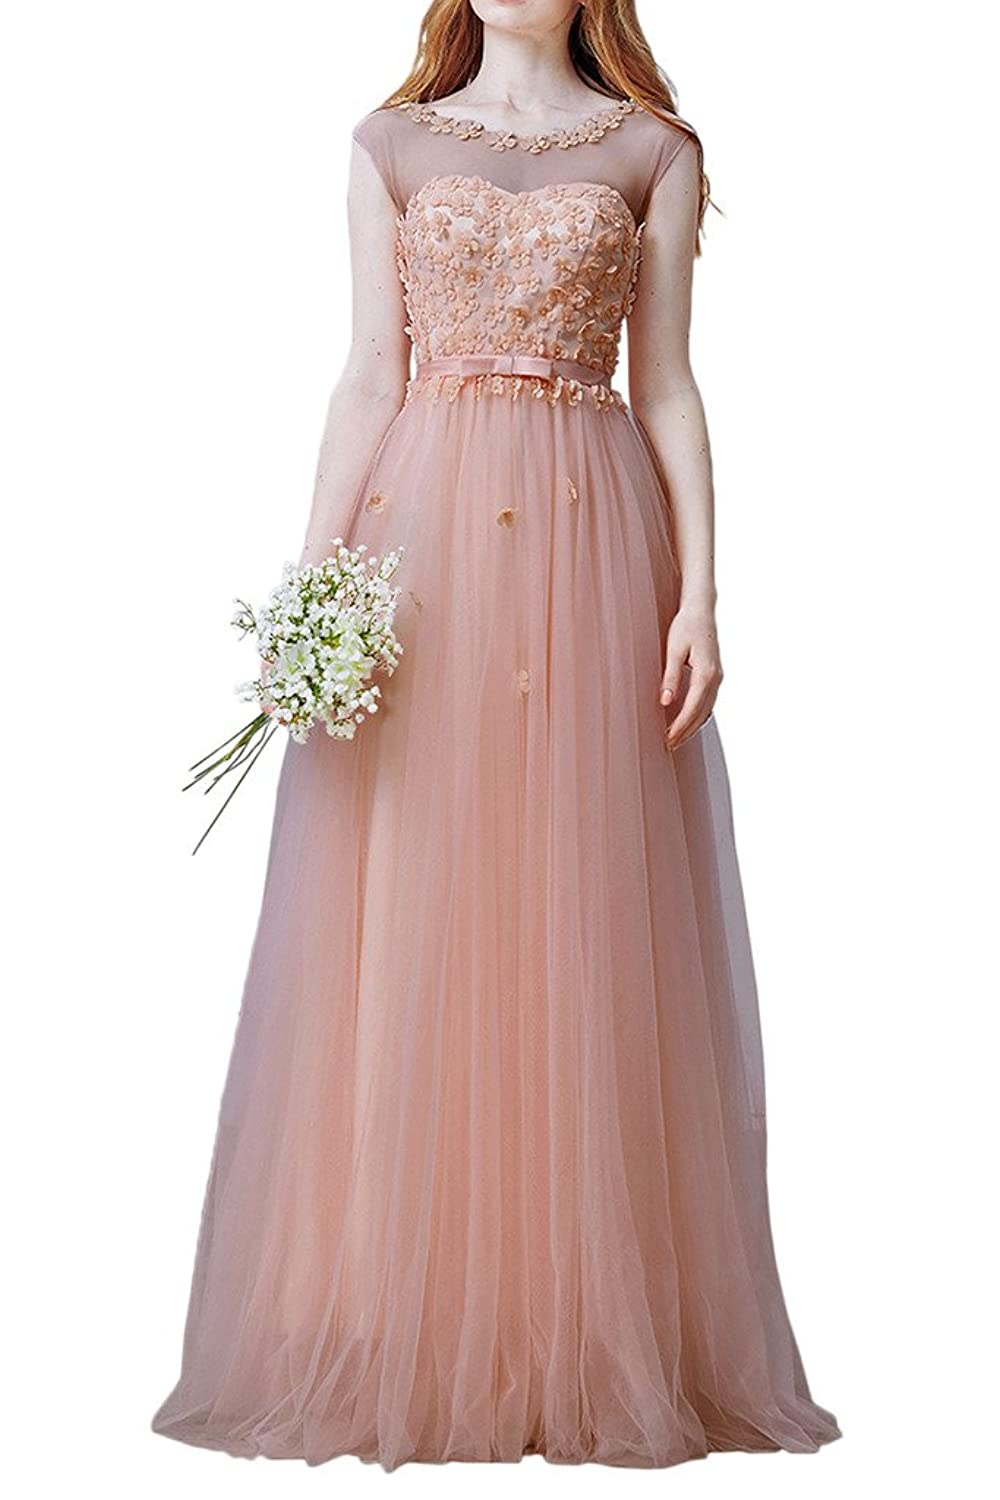 Sunvary Noble Cap Sleeves A Line Bridesmaid Dress Evening Dresses Prom Gowns